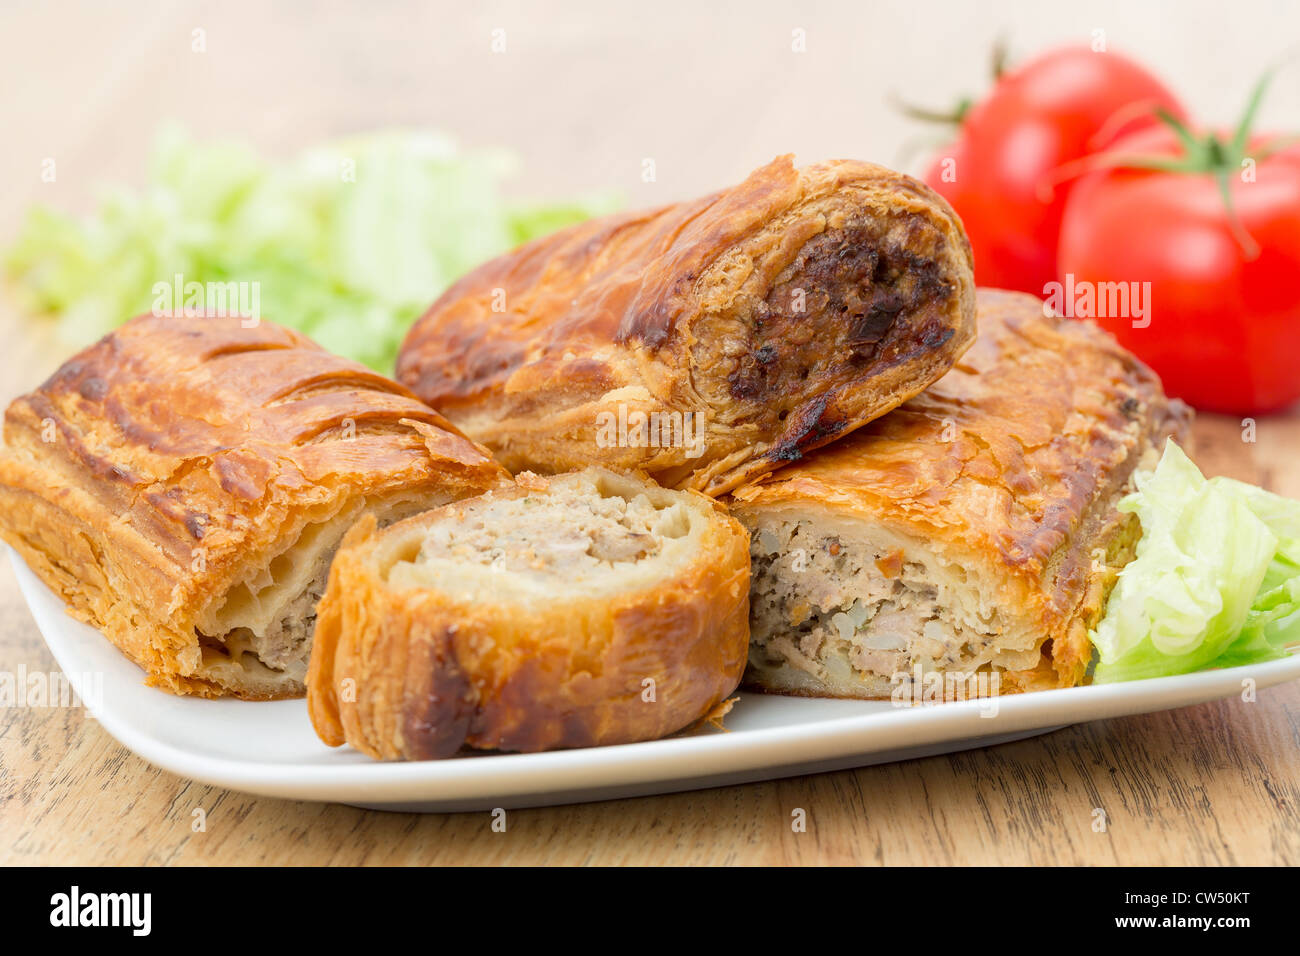 Sausage rolls in flaky puff pastry - Stock Image